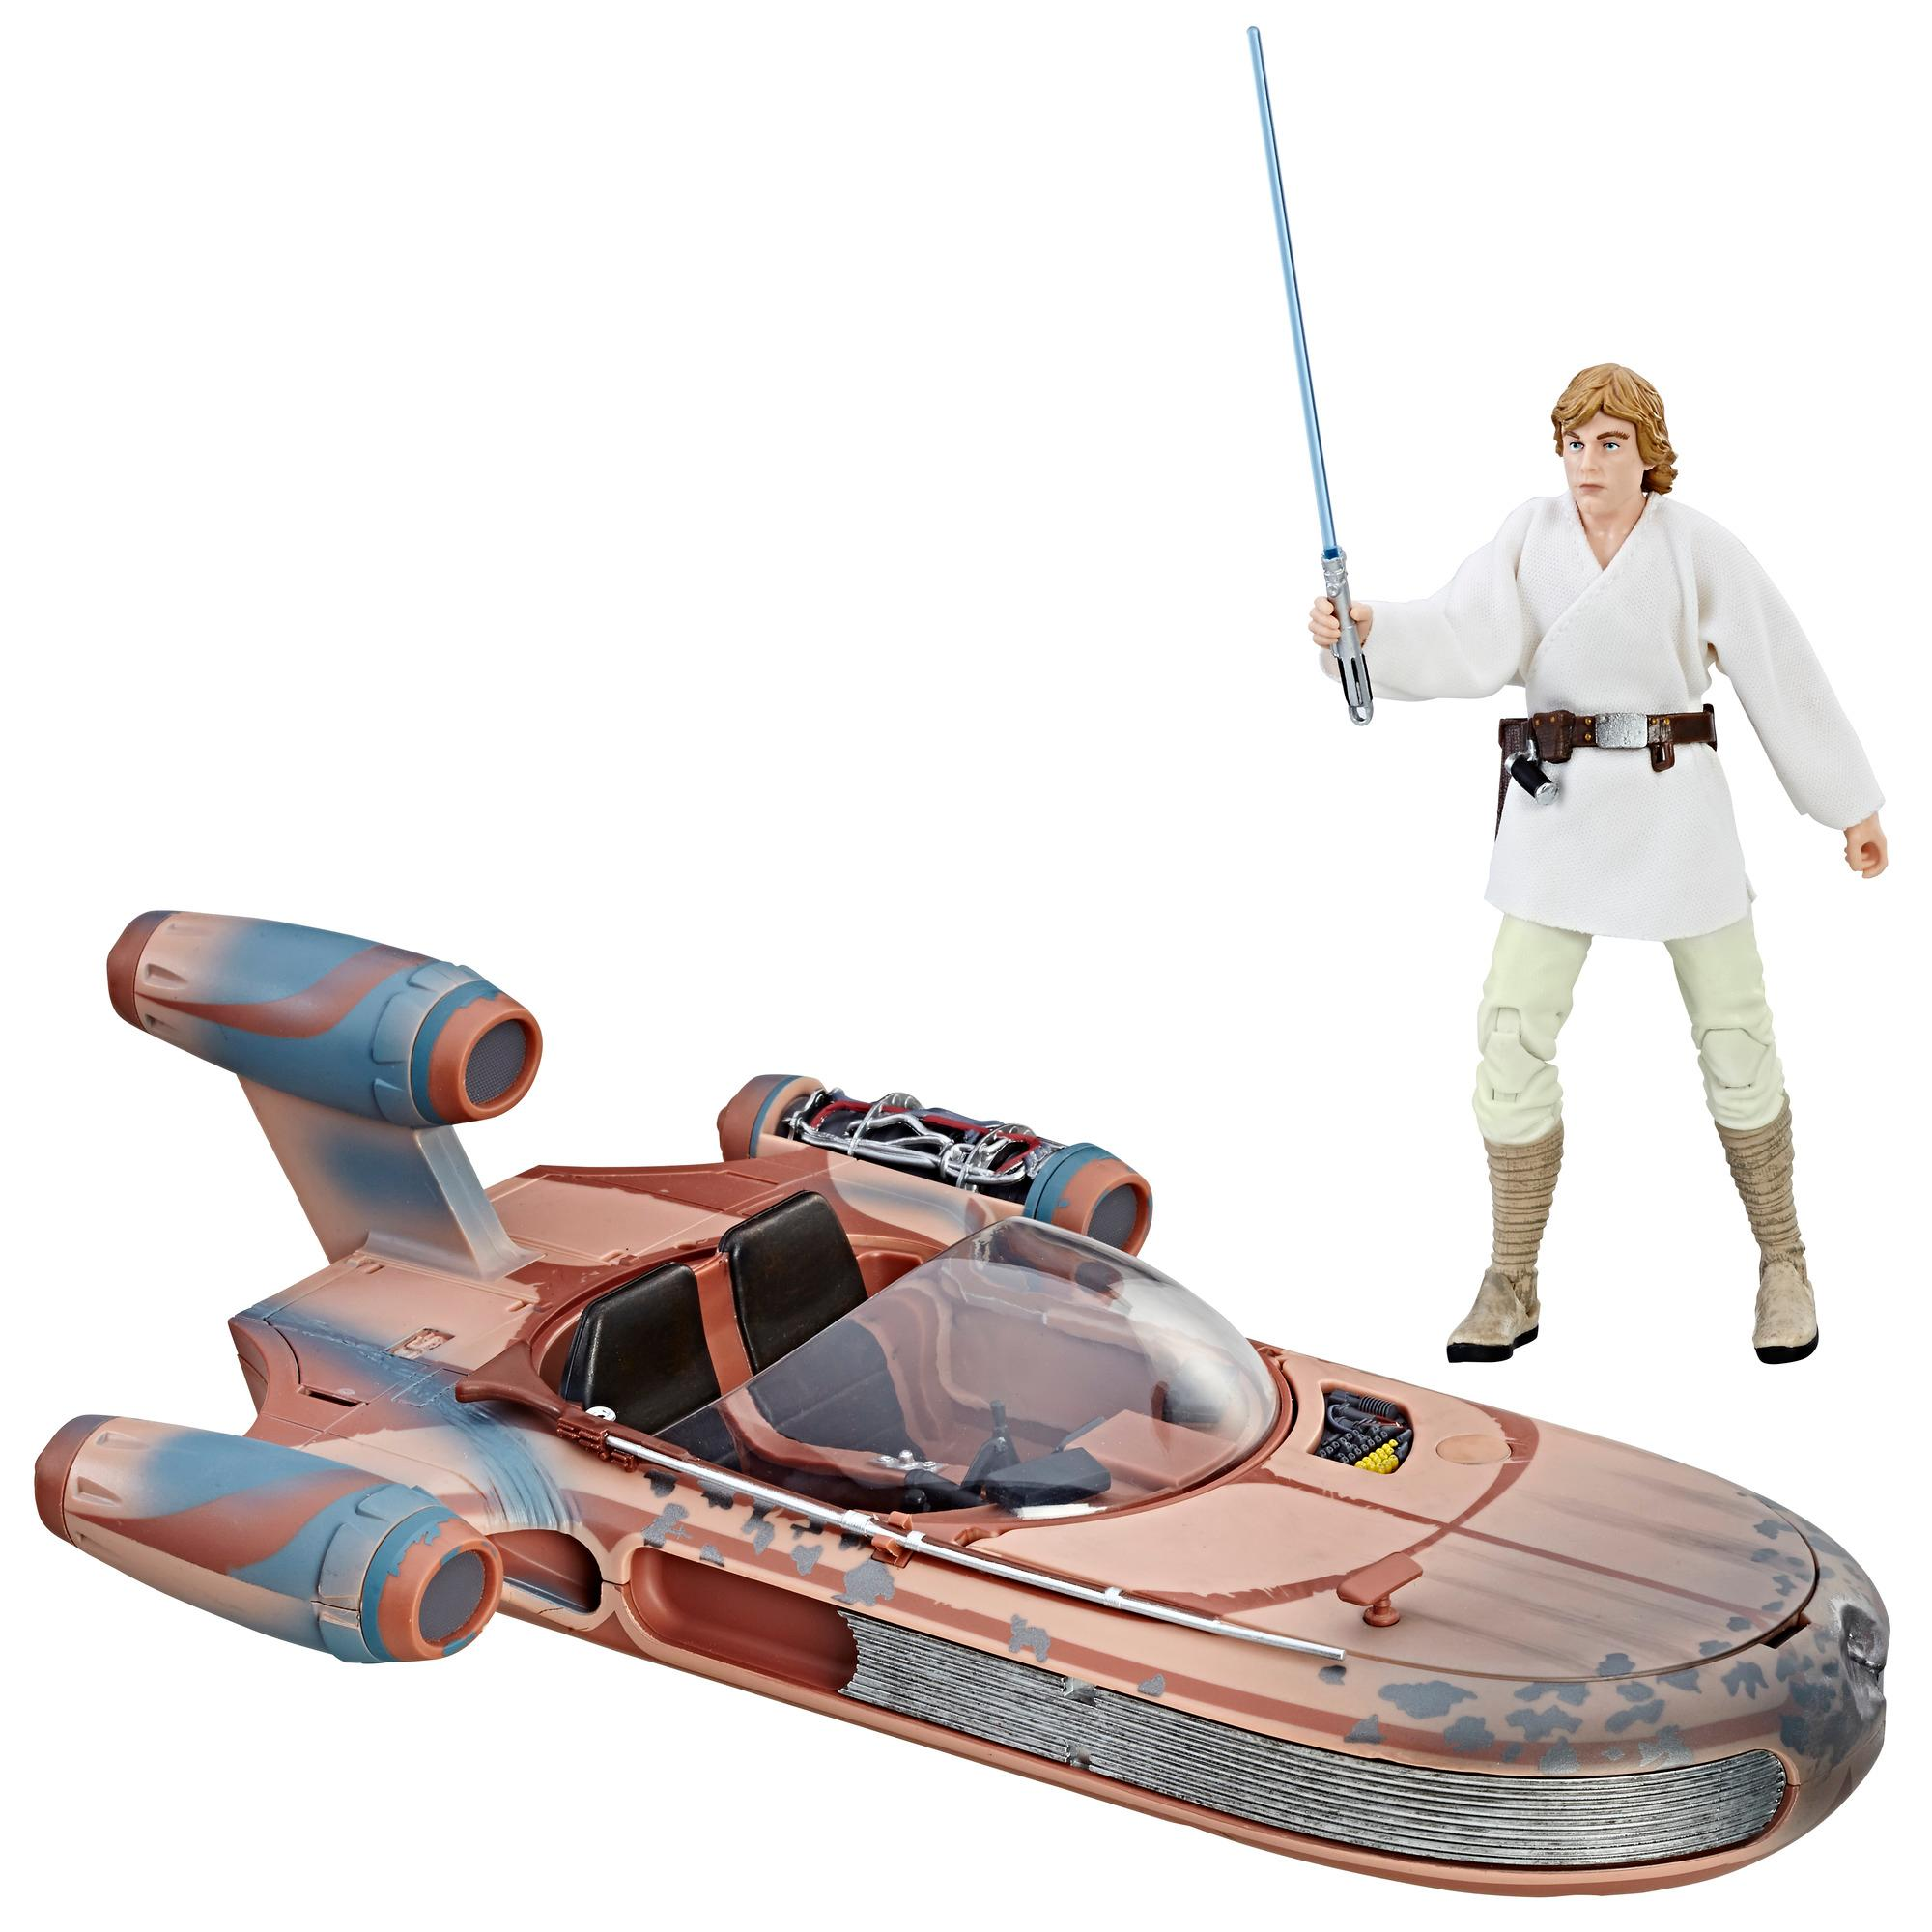 Star Wars Série noire - Figurine Luke Skywalker et son Landspeeder